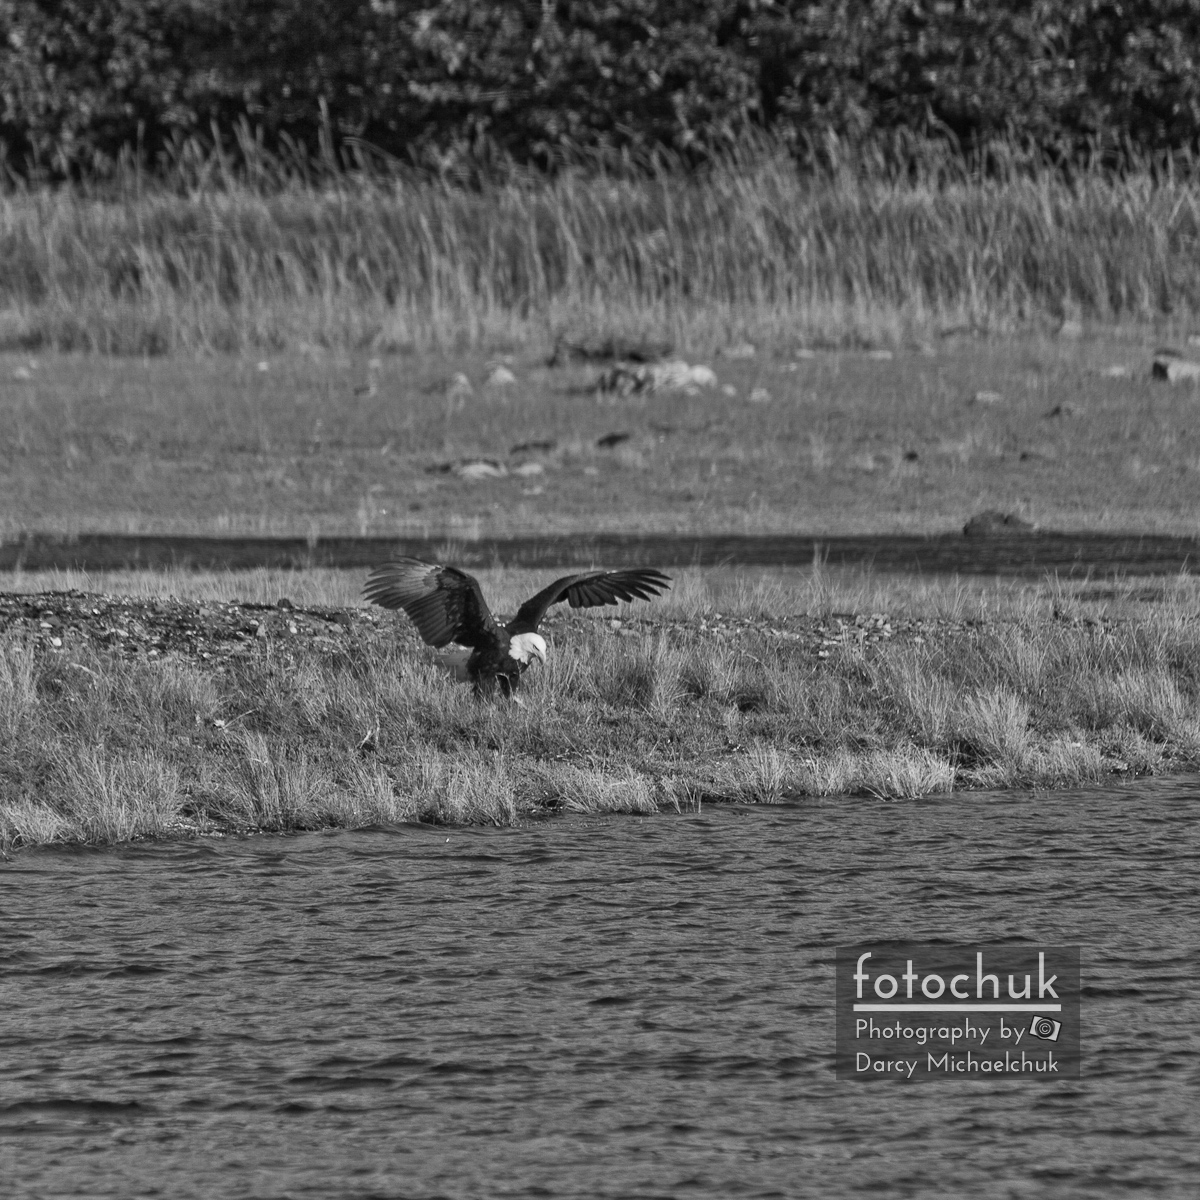 Eagle Wings Spread in Black and White